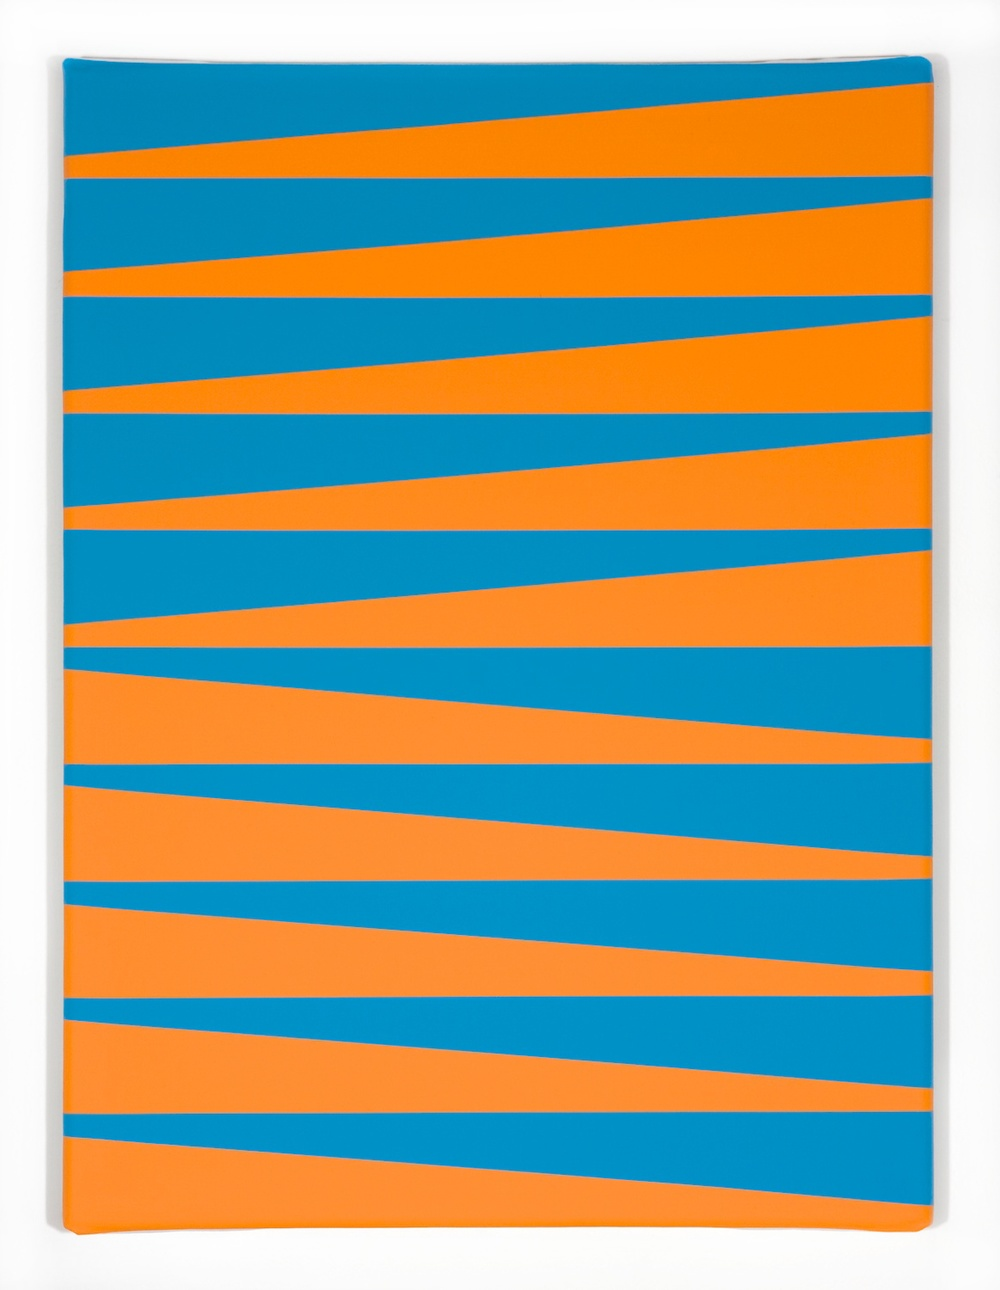 "Jan Van der Ploeg Untitled 2009 Acrylic on linen 16"" x 12"" JVDP007"